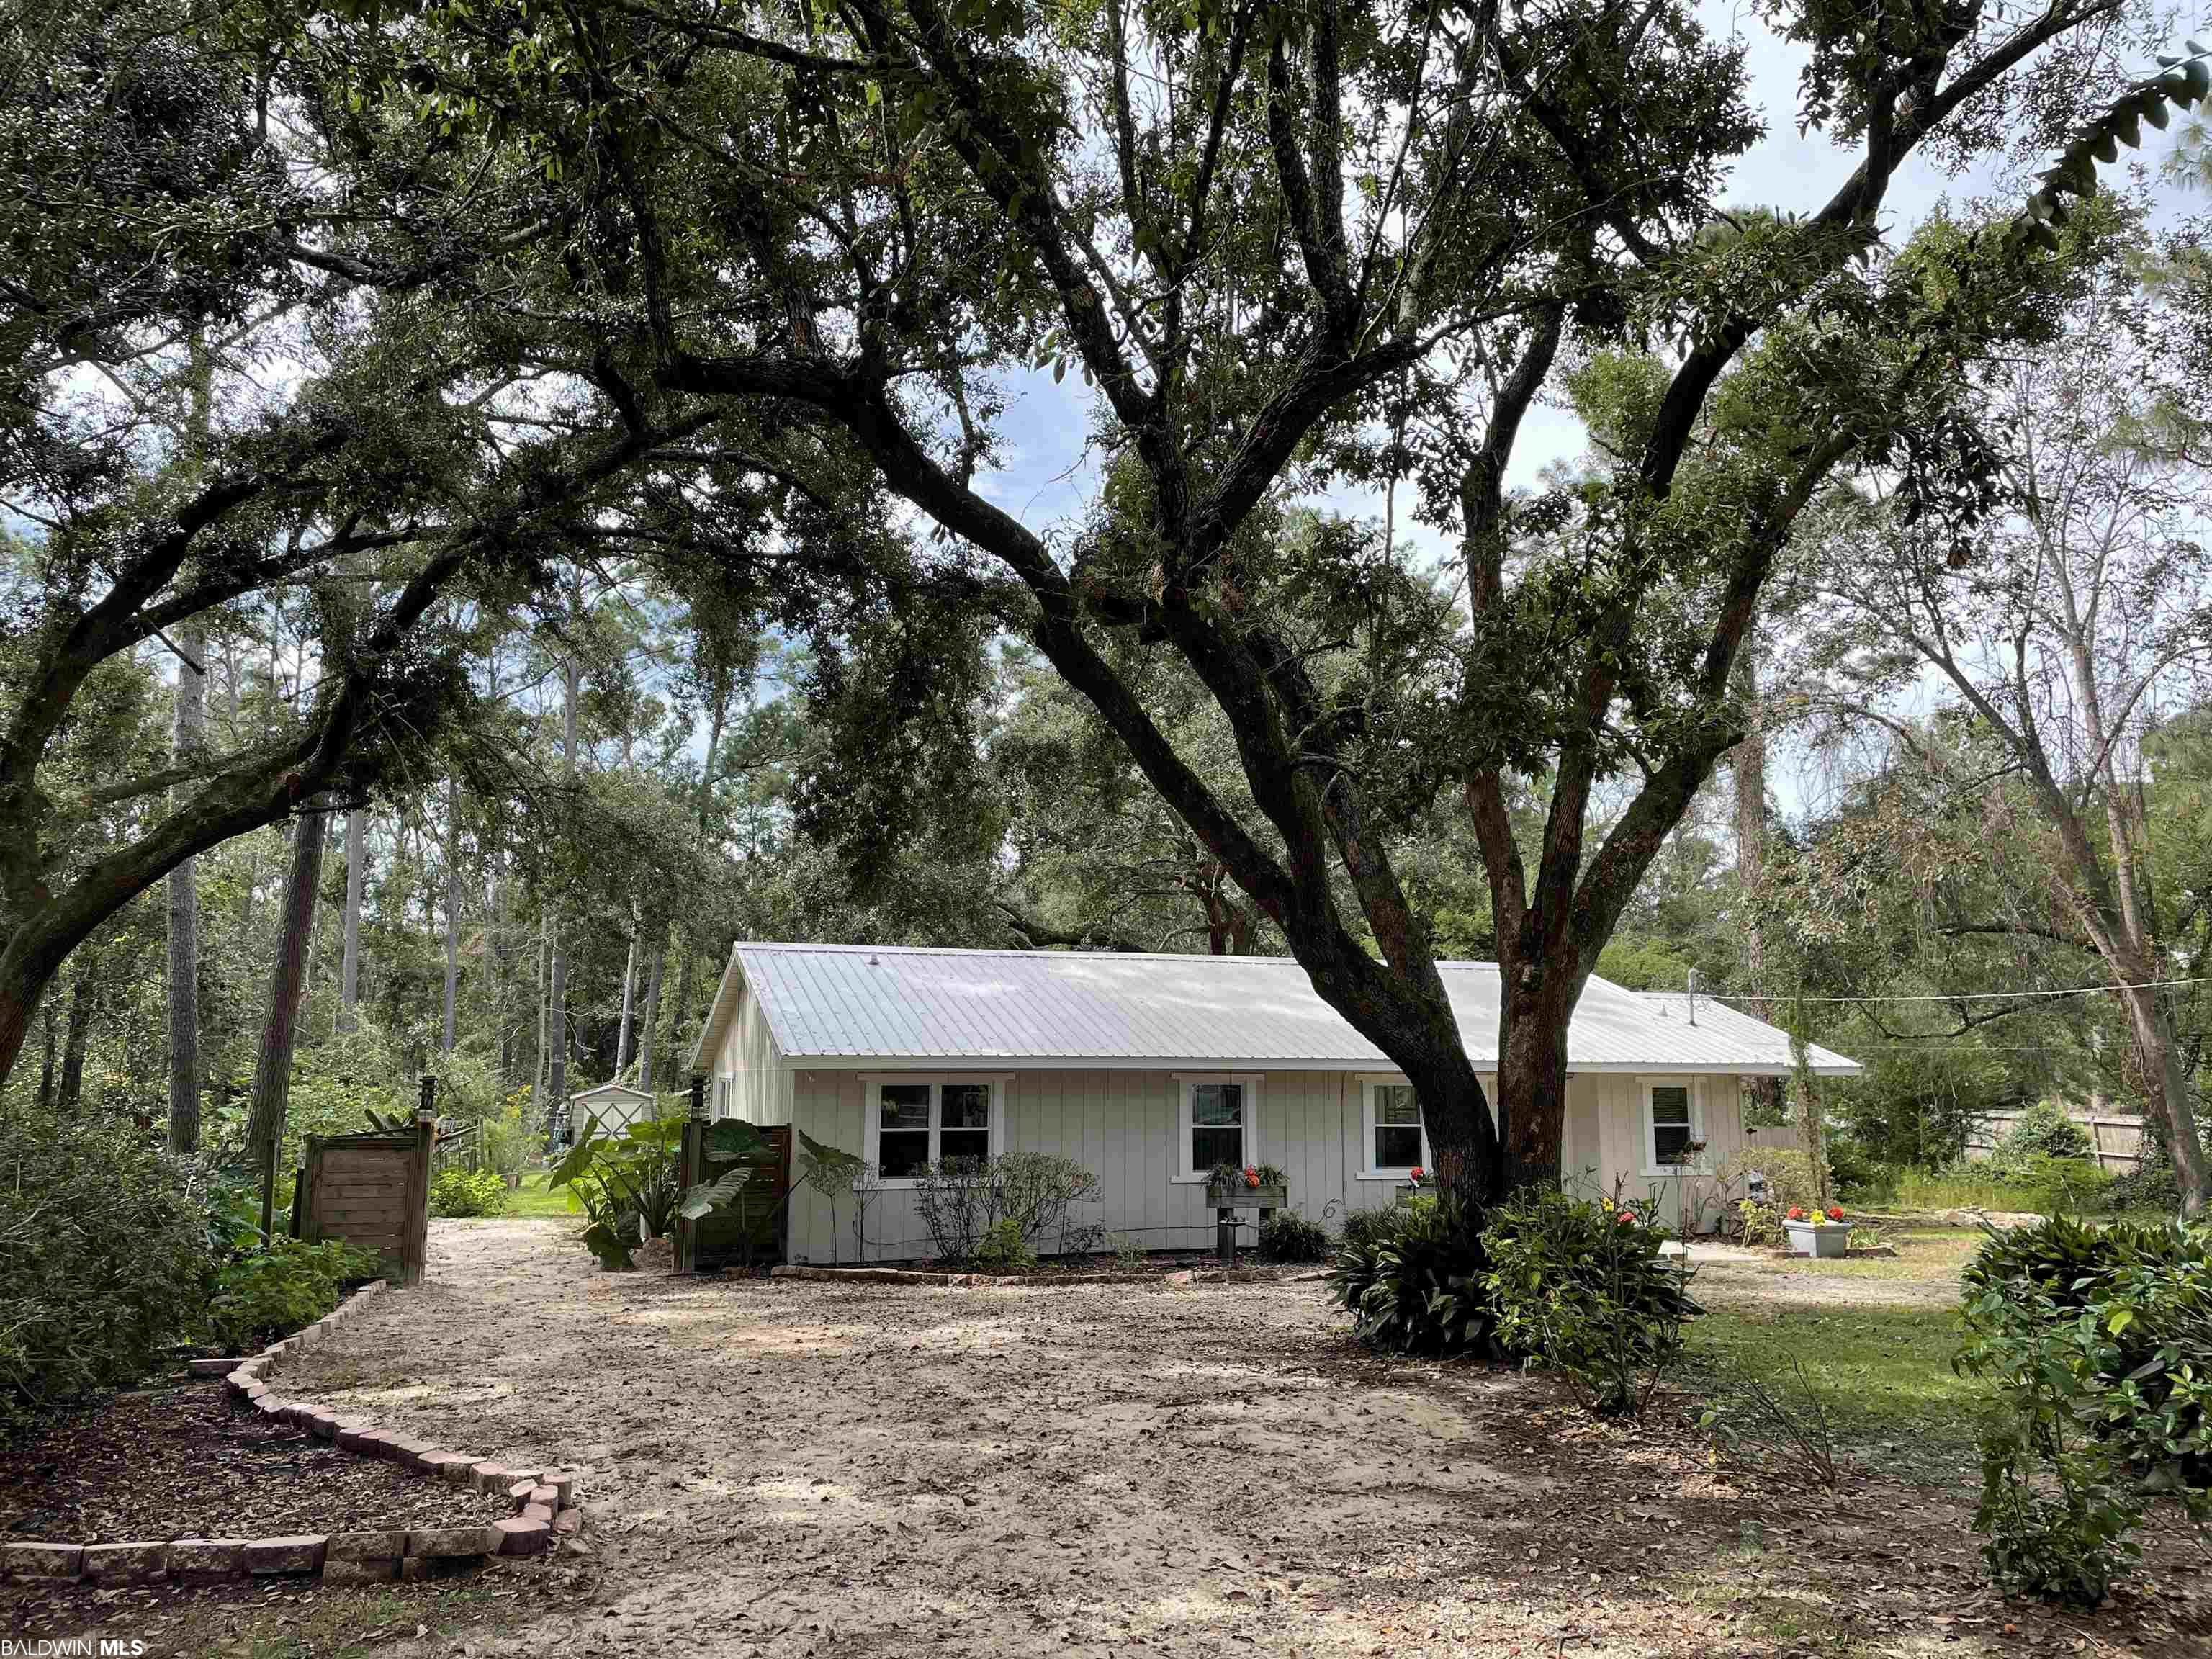 Beautiful home on a spacious lot near fish river.  Boat slip access.  Large wooded lot with outside area for entertaining.  Option to dig into canal on back of lot to make your own boat access.  This home is Price to Sell! There is a small access point already existing in the canal in the neighborhood that allows access to the water to get a boat in to lead to Fish River which leads Weeks Bay which leads to Mobile Bay/gulf. It's just past the house going towards the houses on the water but before them. Seller was told that the dry ditch/canal in the backyard could be dug out to create a passageway to main water. There are 3-4 satsuma orange trees that bear enough for daily fresh juice. Apple trees that just began to bear fruit last season. Fig tree that is fruit bearing. Several other fruit trees that include peach, pear and plum that should bear fruit next season. Many beautiful blooming mature hydrangeas, gardenias, azaleas, roses, to create fresh bouquets to decorate your home. Fire spike bushes and weeping camellias create dramatic foliage showing off nature's beauty. A majestic, live oak in the backyard provides comfortable shade. A walking path was created in the front yard with iron plants to lead you to your collection of mail from the from that mailbox. The roof and decking will be professionally cleaned as soon as the weather permits. This home is less than a 20 minute drive to the beach.